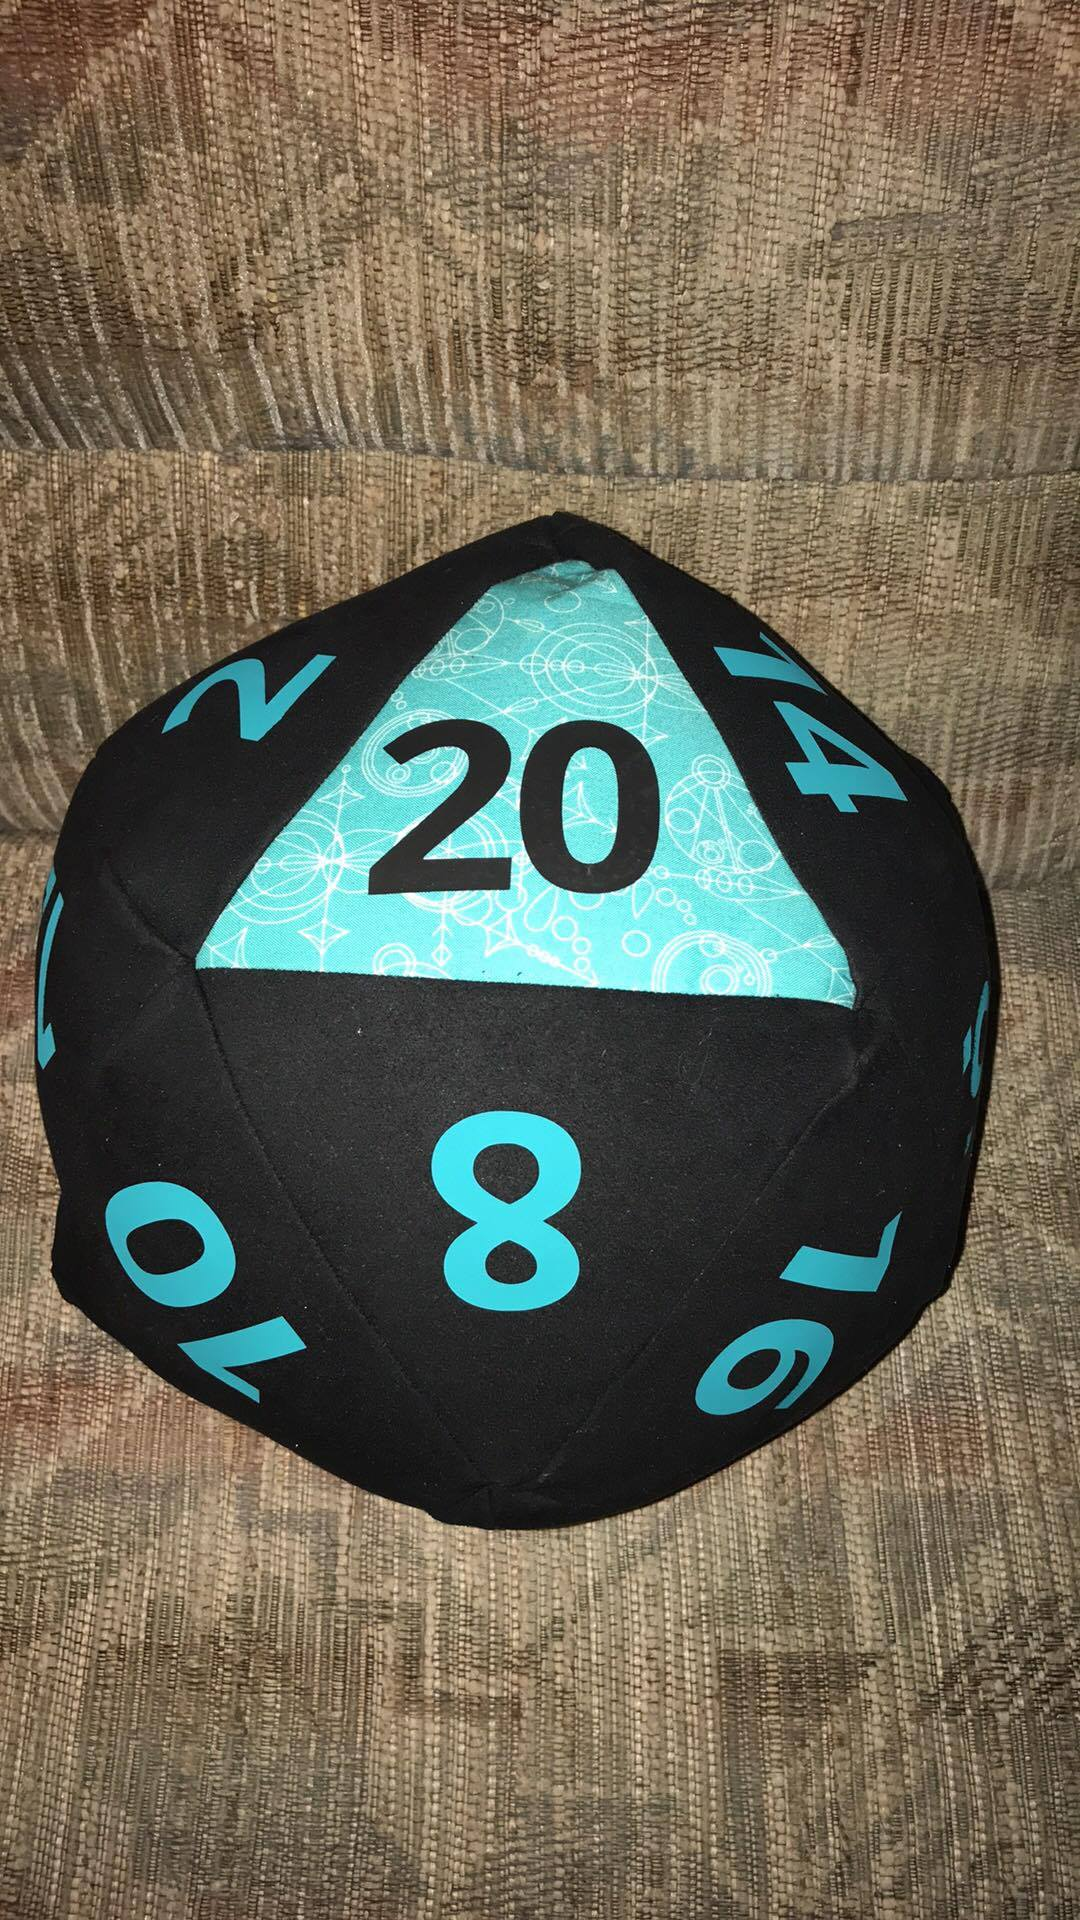 Teal and Black with an accent make the 20 really pop!